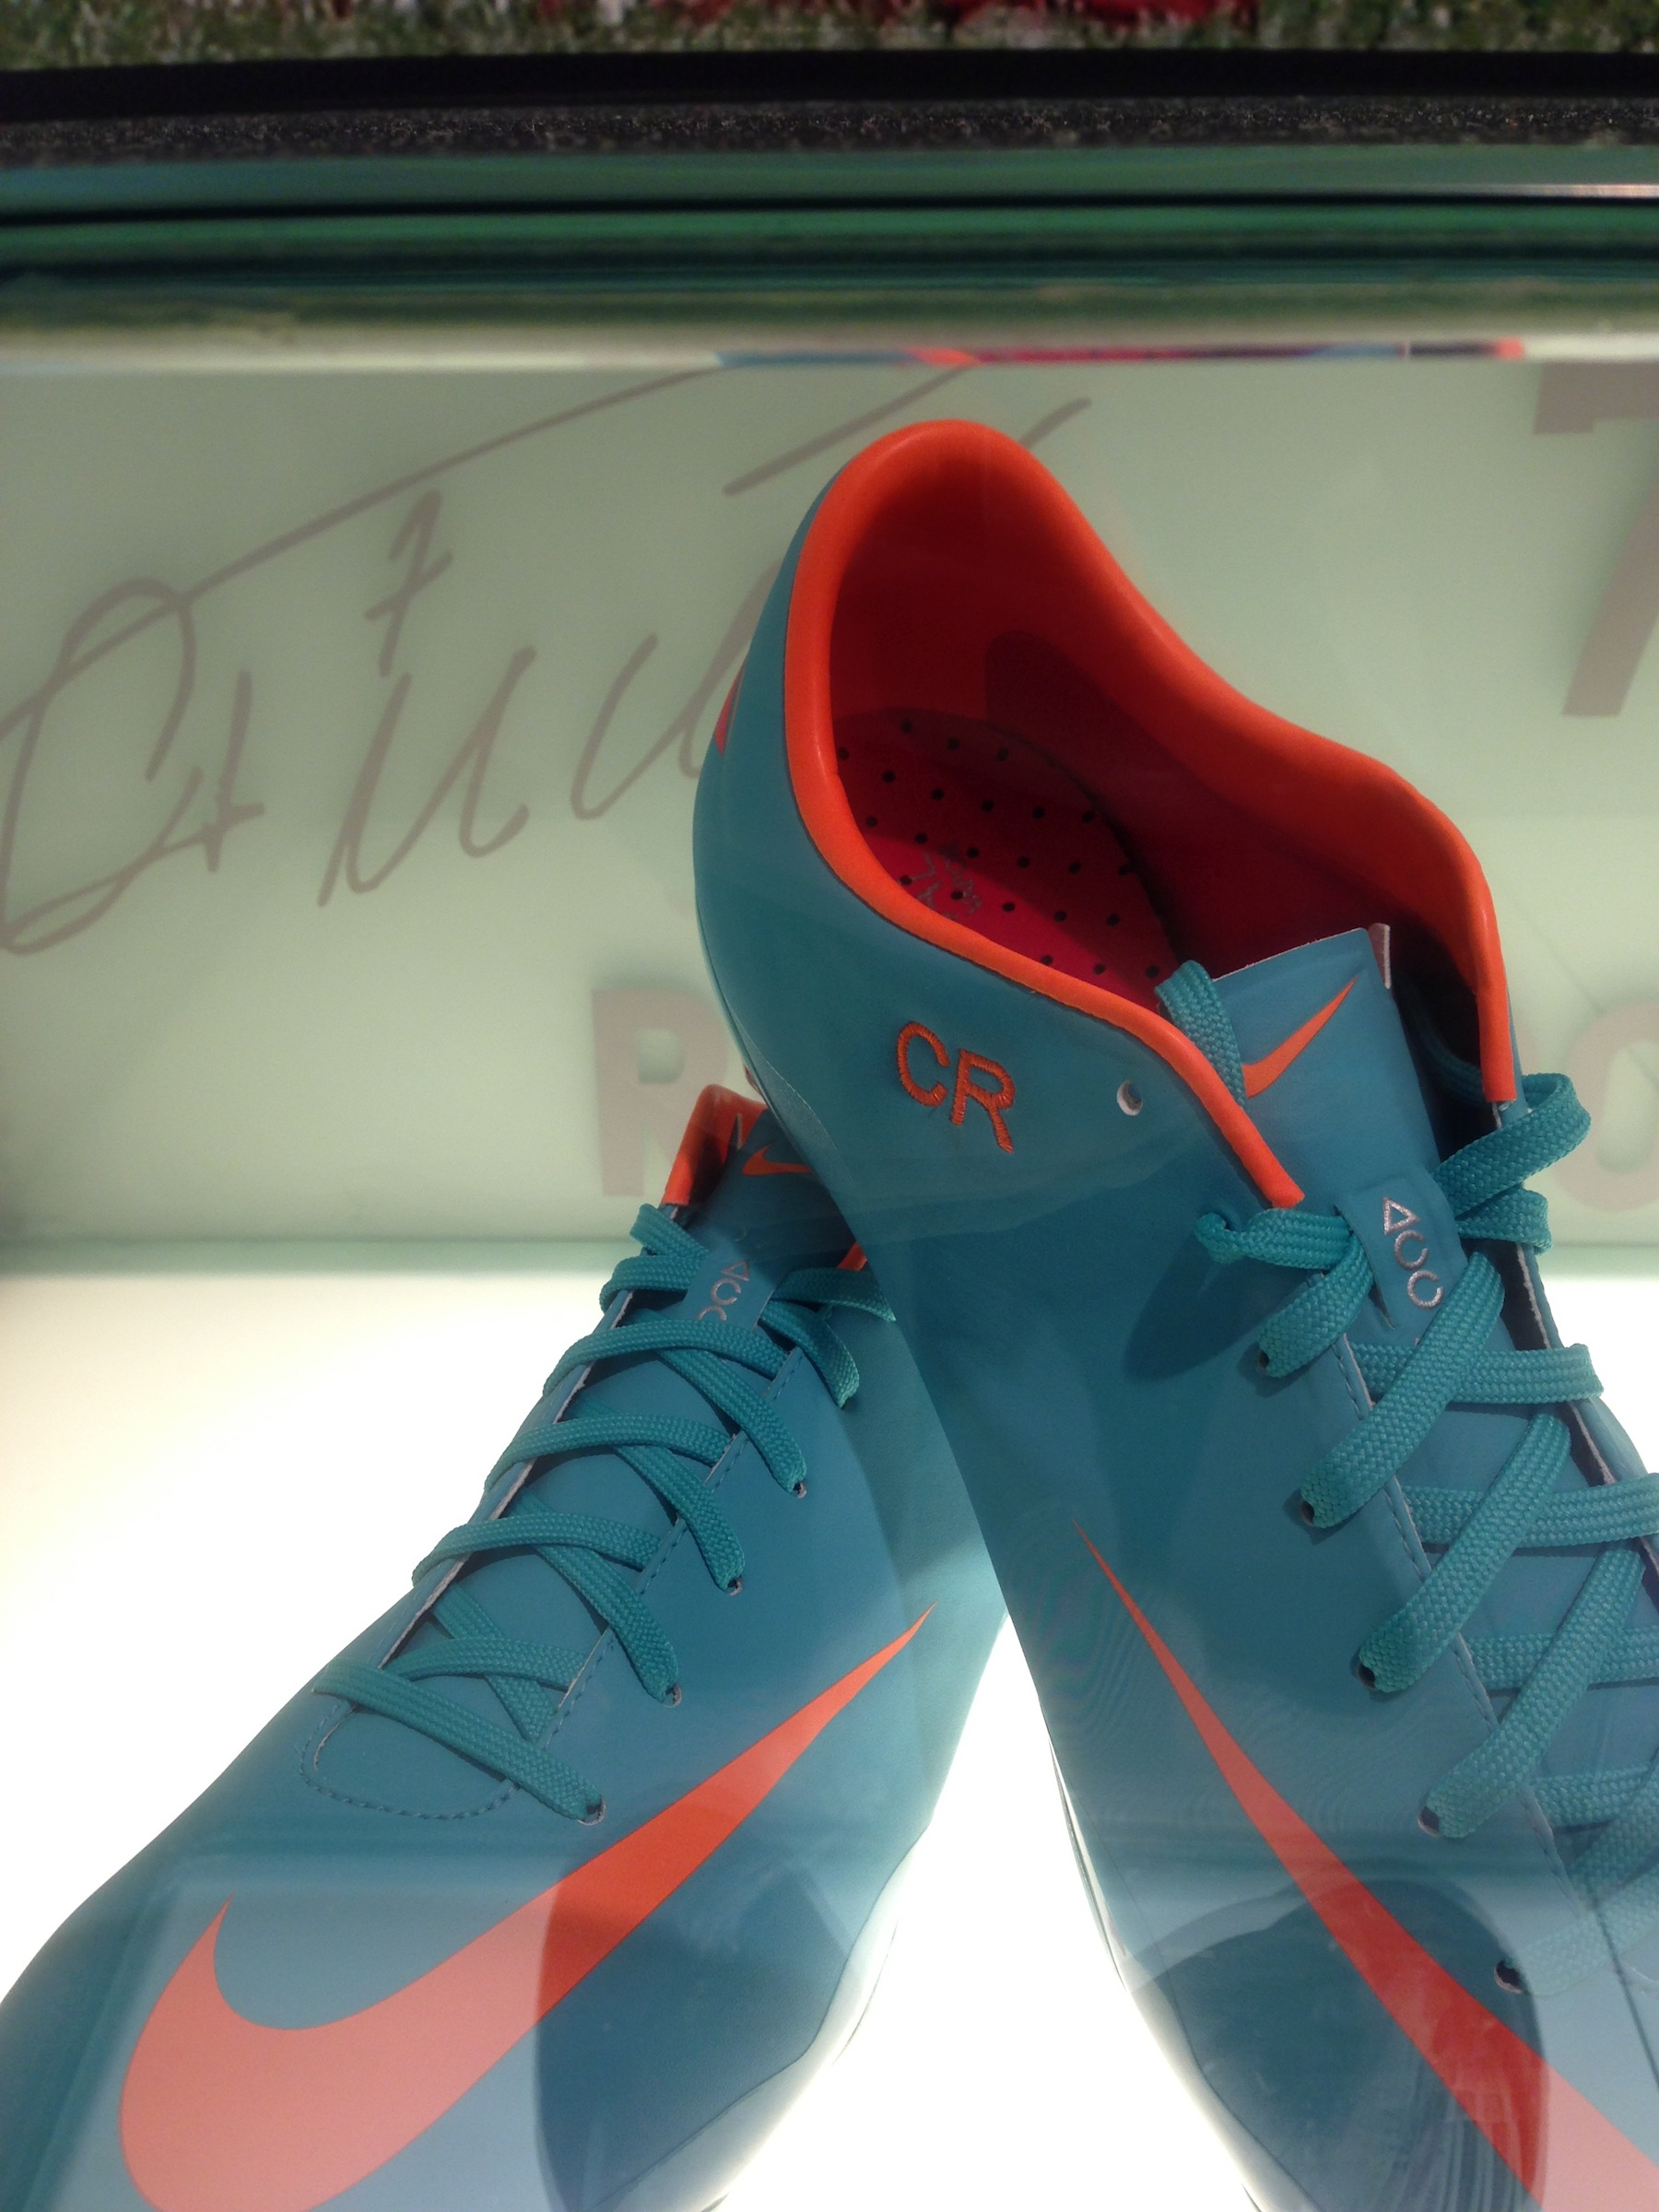 New Cristiano Ronaldo Shoes Cristiano Ronaldos Shoes